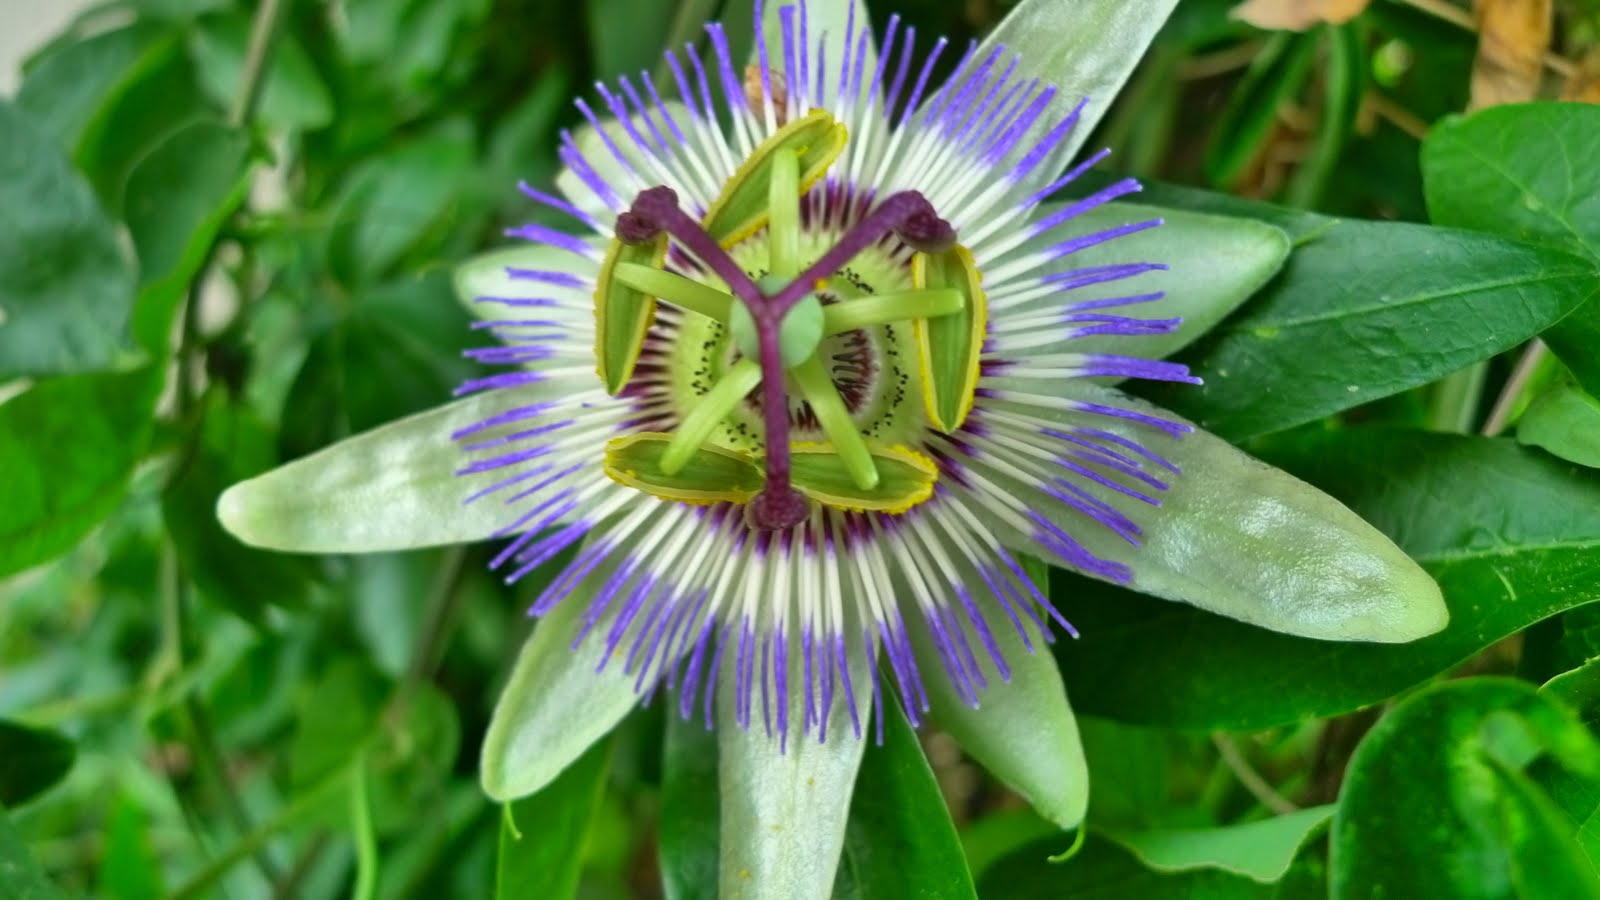 The spice doc edible and medicinal flowers - On A Most Recent Trip To Paris I Was Lucky Enough To Catch Sight Of The Absolutely Spectacular And Surreal Passion Fruit Flower Which Begins To Fruit In The